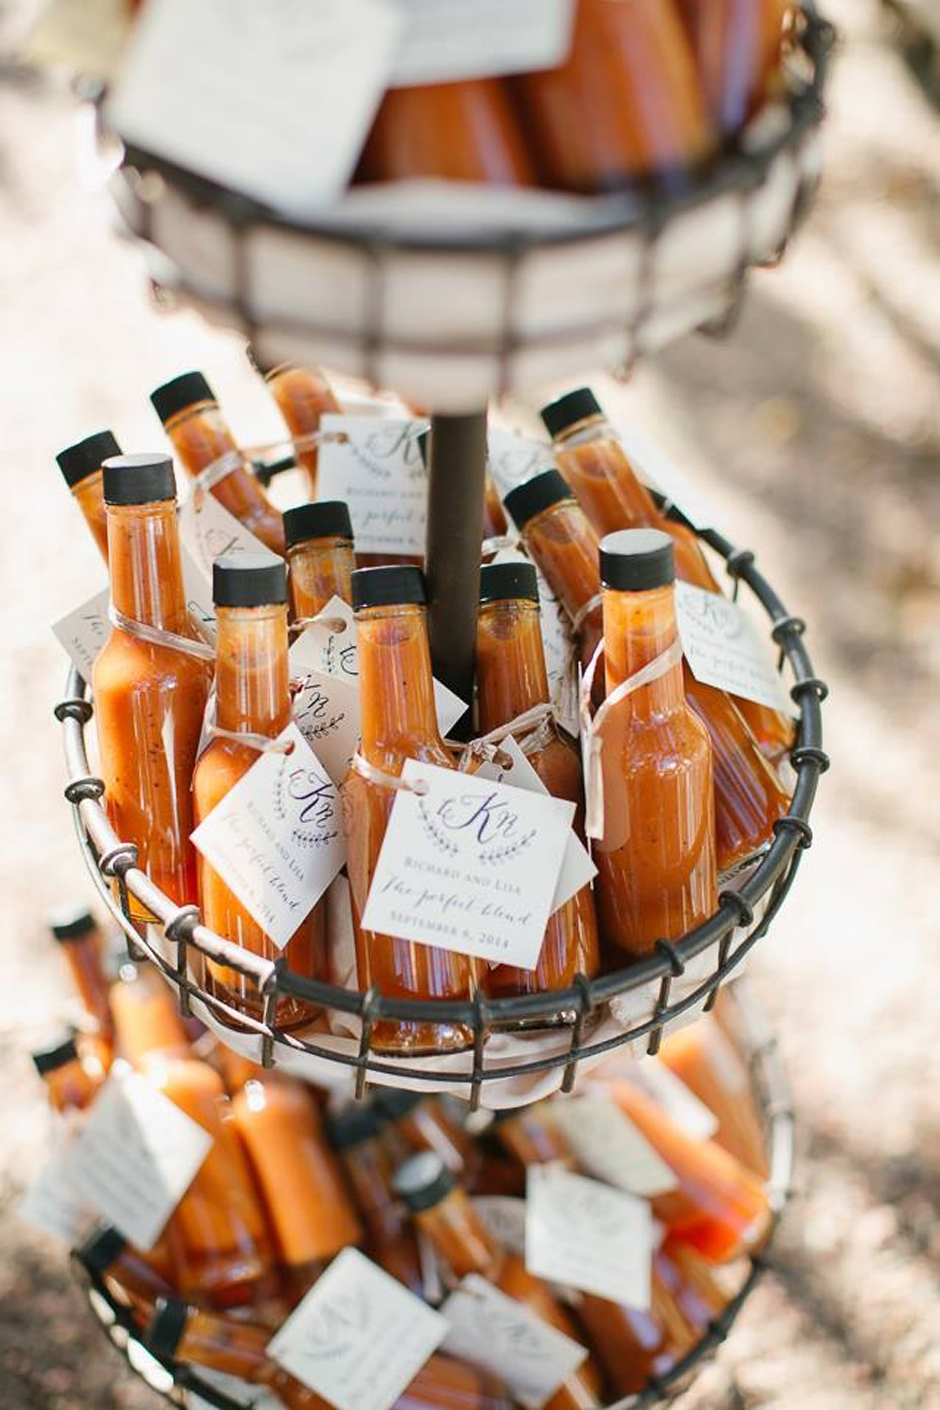 Miniature bottles of hot sauce gathered in a basket and used as wedding favors.